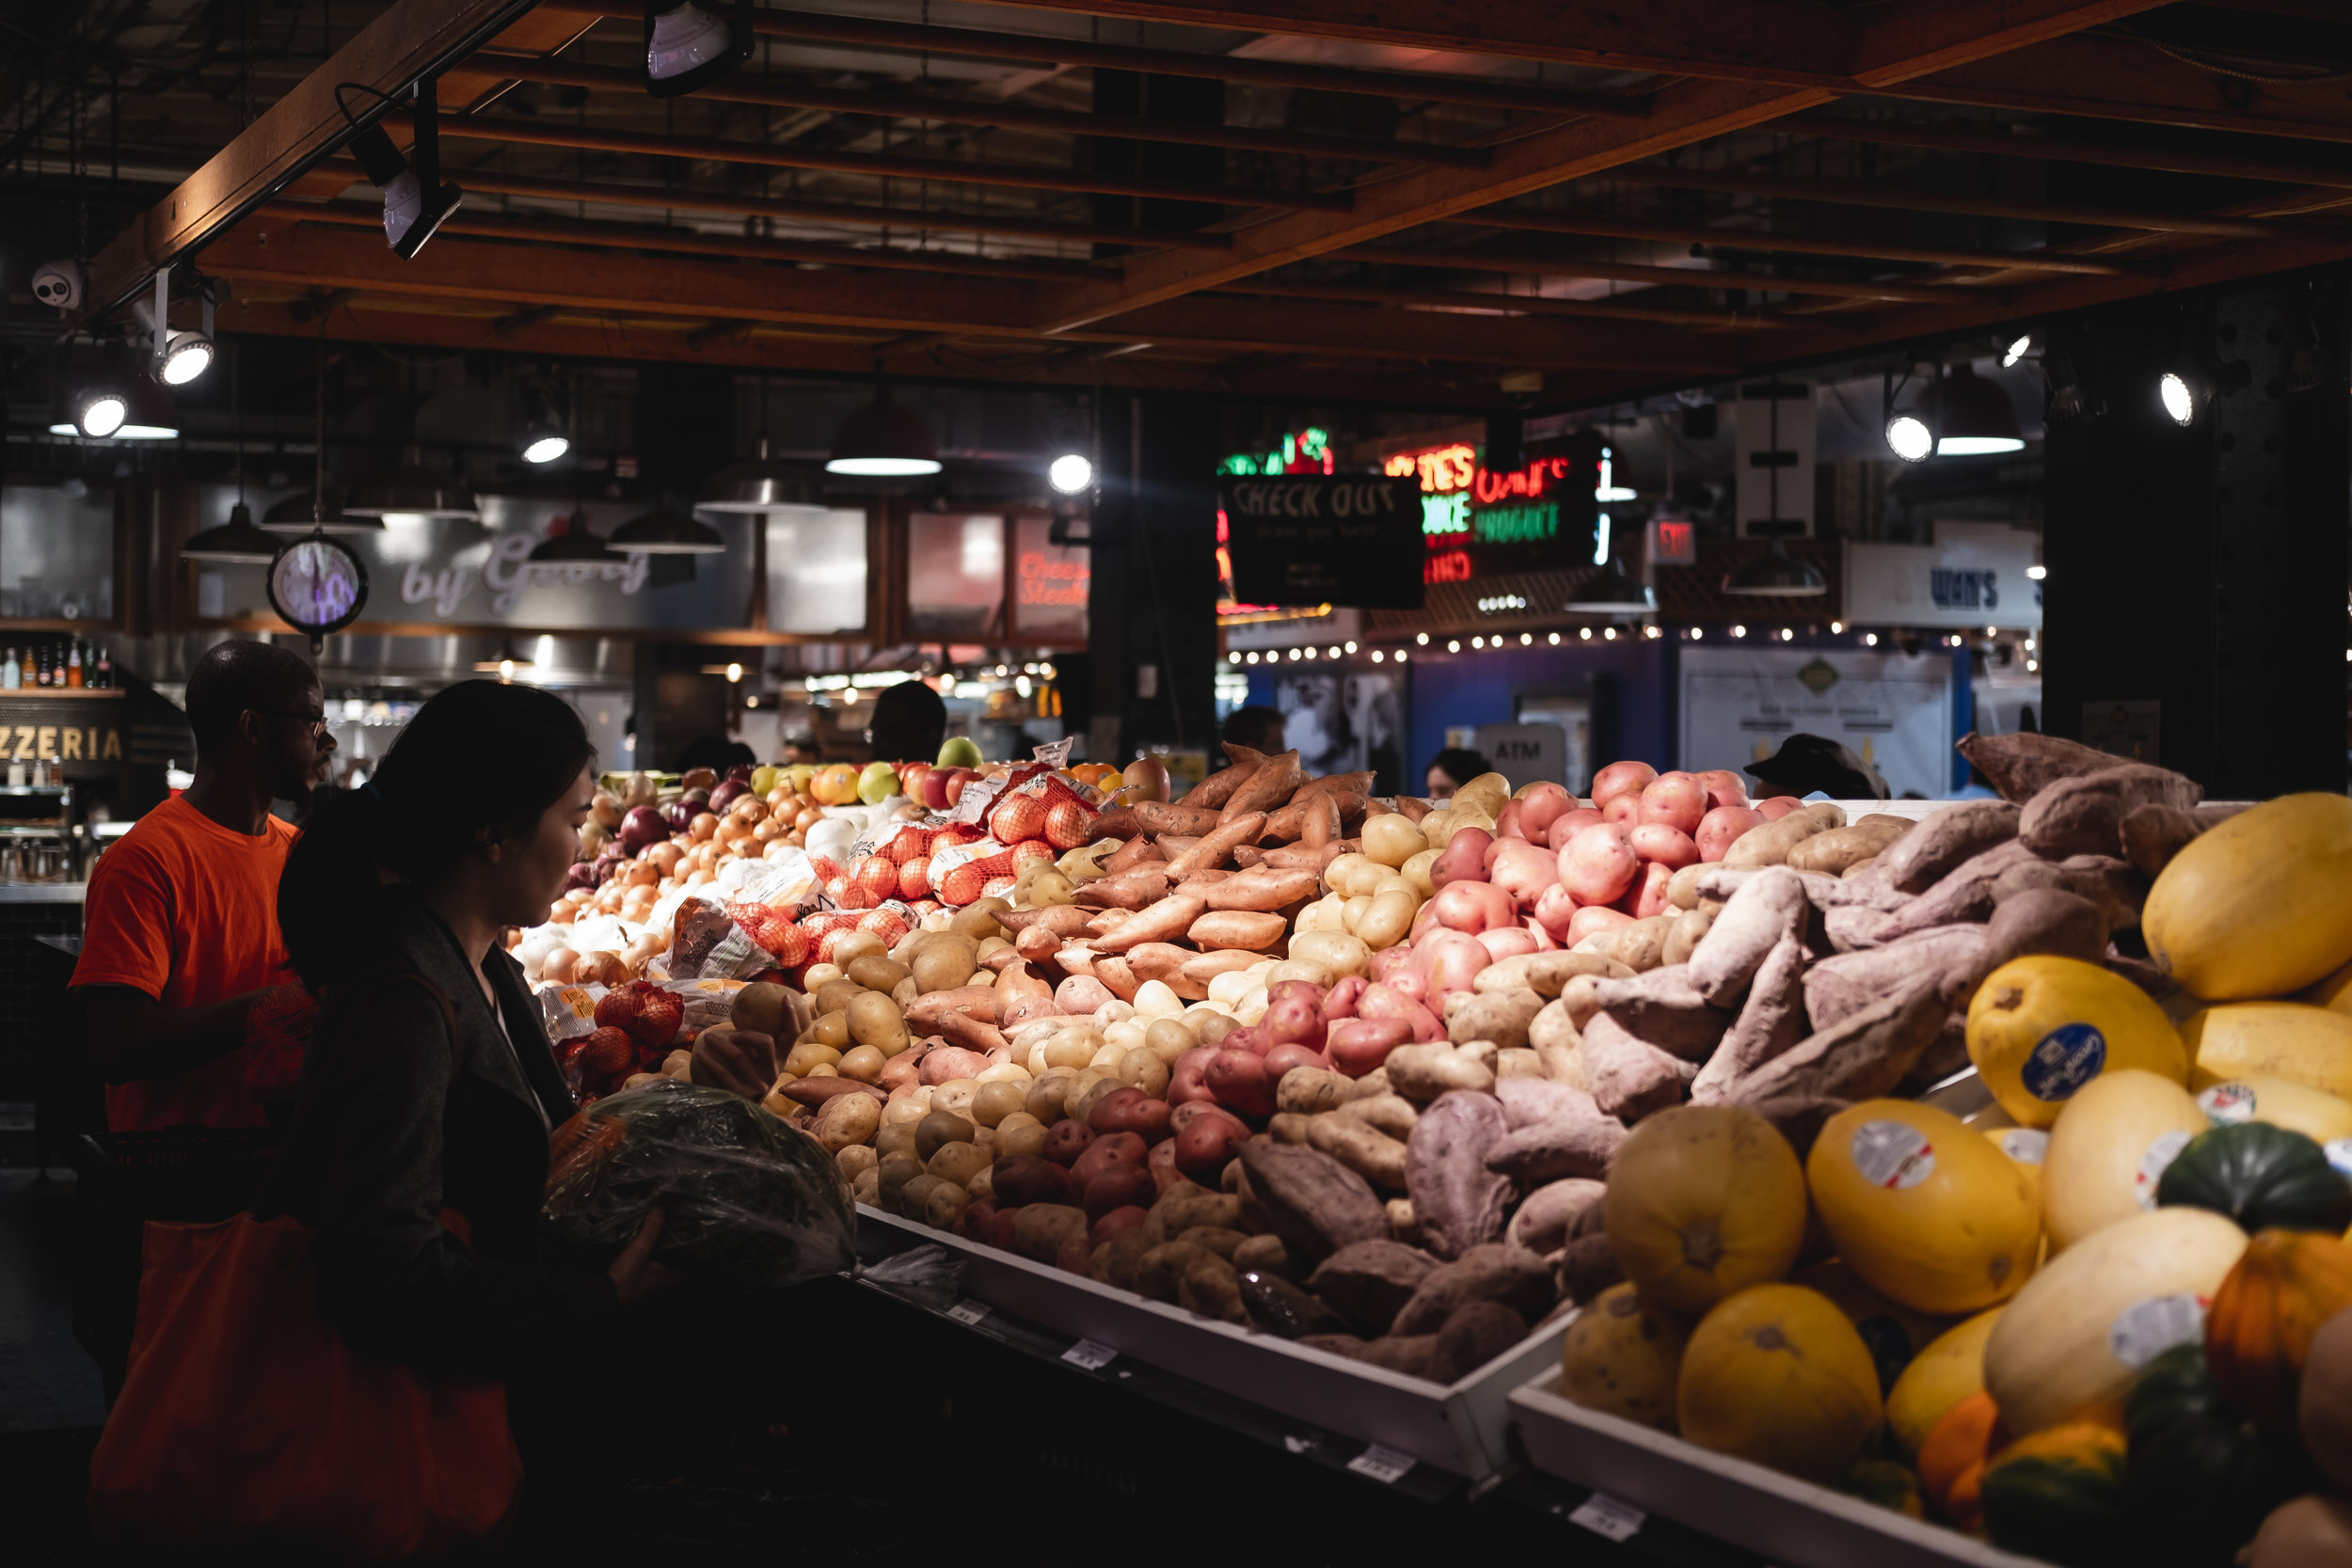 2019_READING TERMINAL MARKET_FOOD_THE PHILLY CHECKLIST-1.jpg